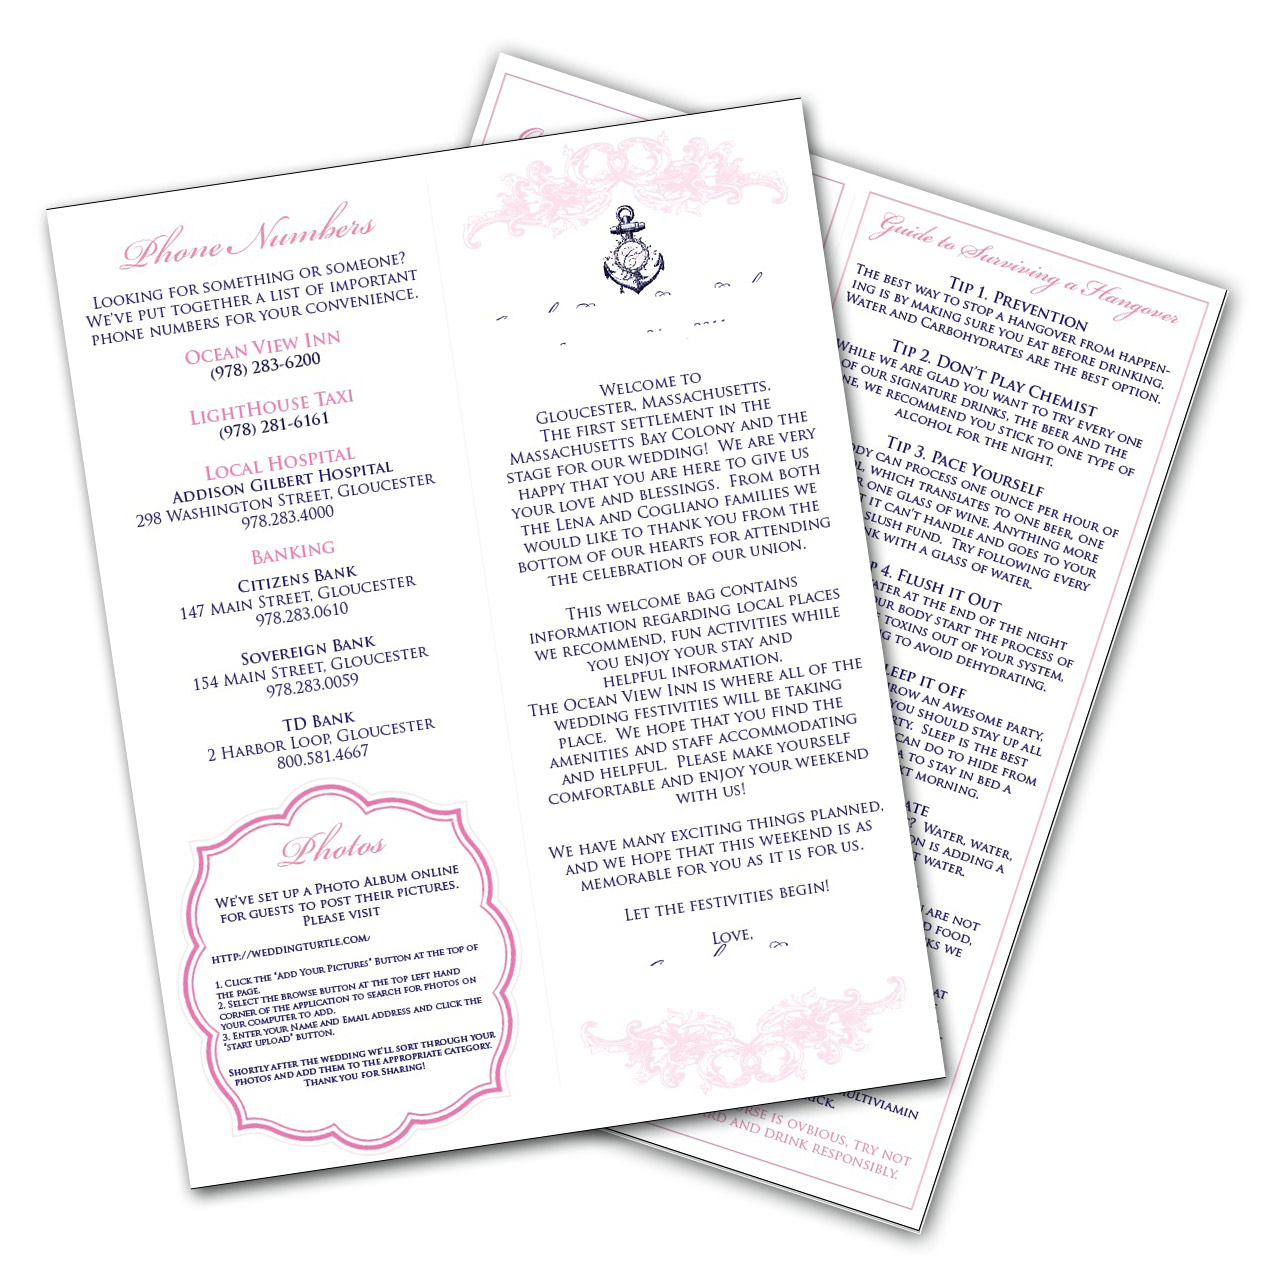 Free resume templates welcome letter for hotel guest free templates welcome letter for hotel guest free templates samples and tested templates designs download free for commercial or non commercial projects spiritdancerdesigns Choice Image